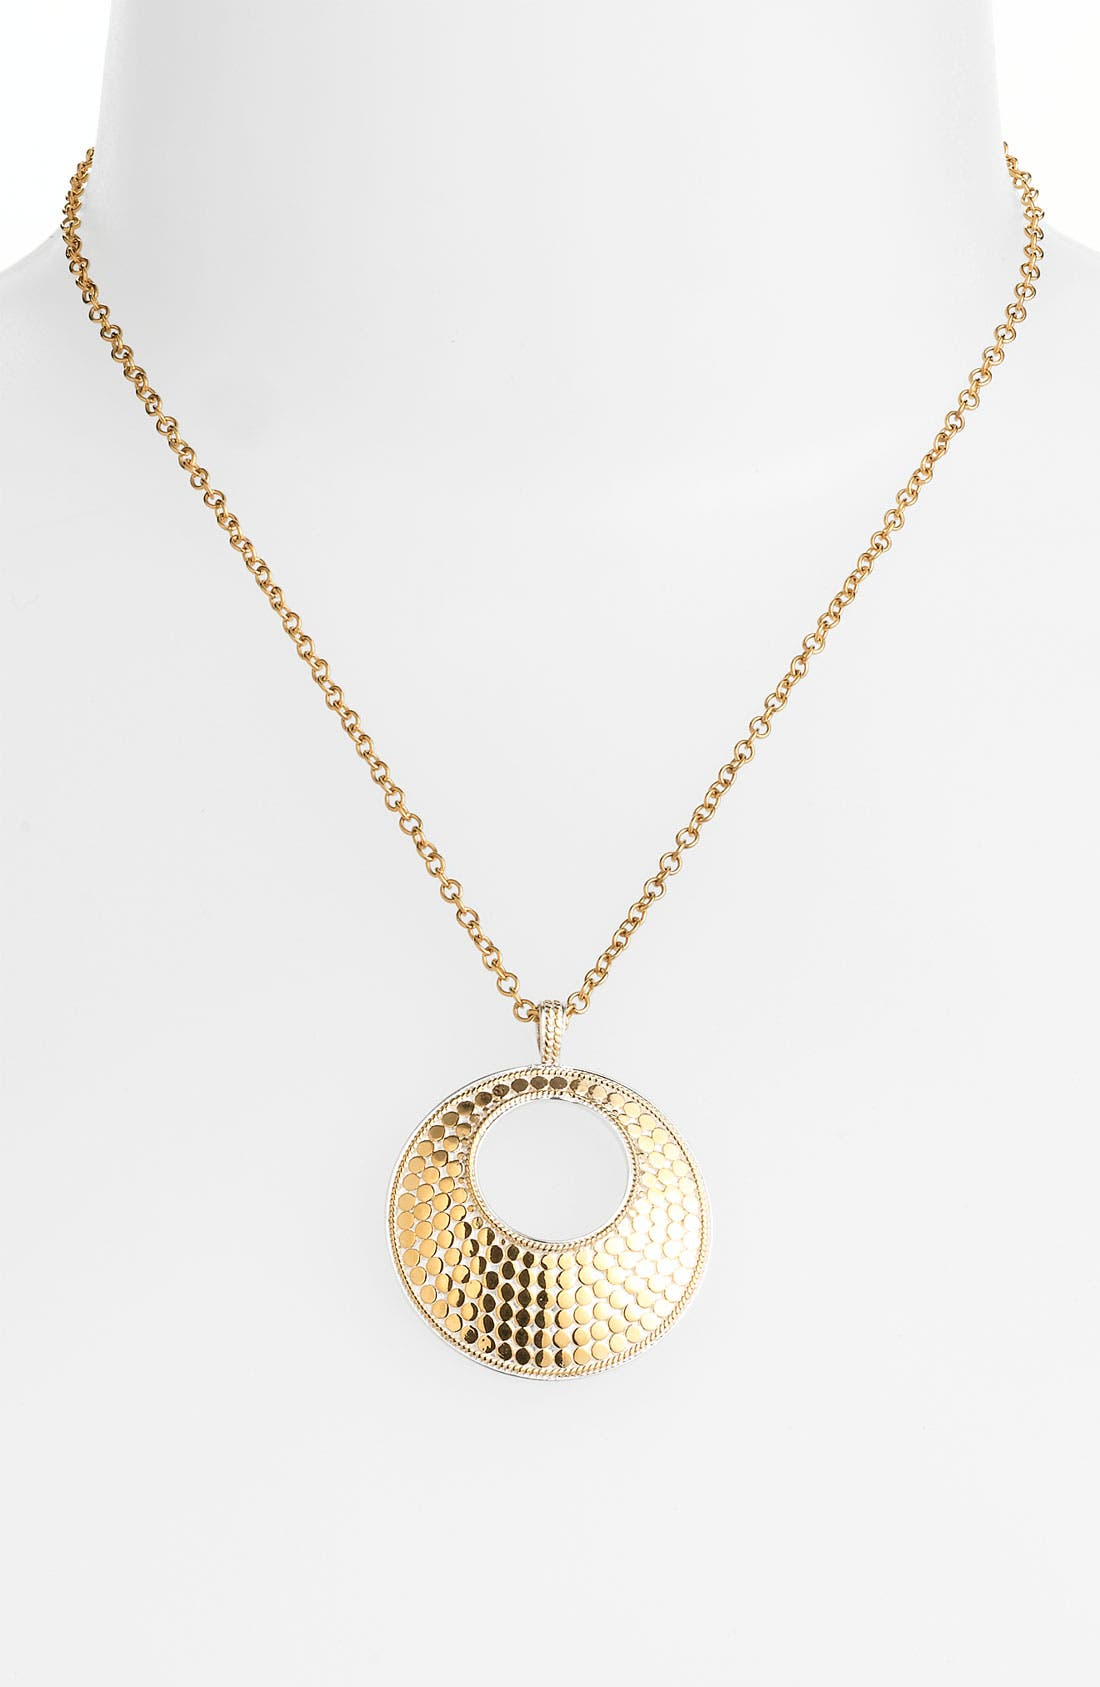 Main Image - Anna Beck 'Gili' Open Circle Pendant Necklace (Nordstrom Exclusive)